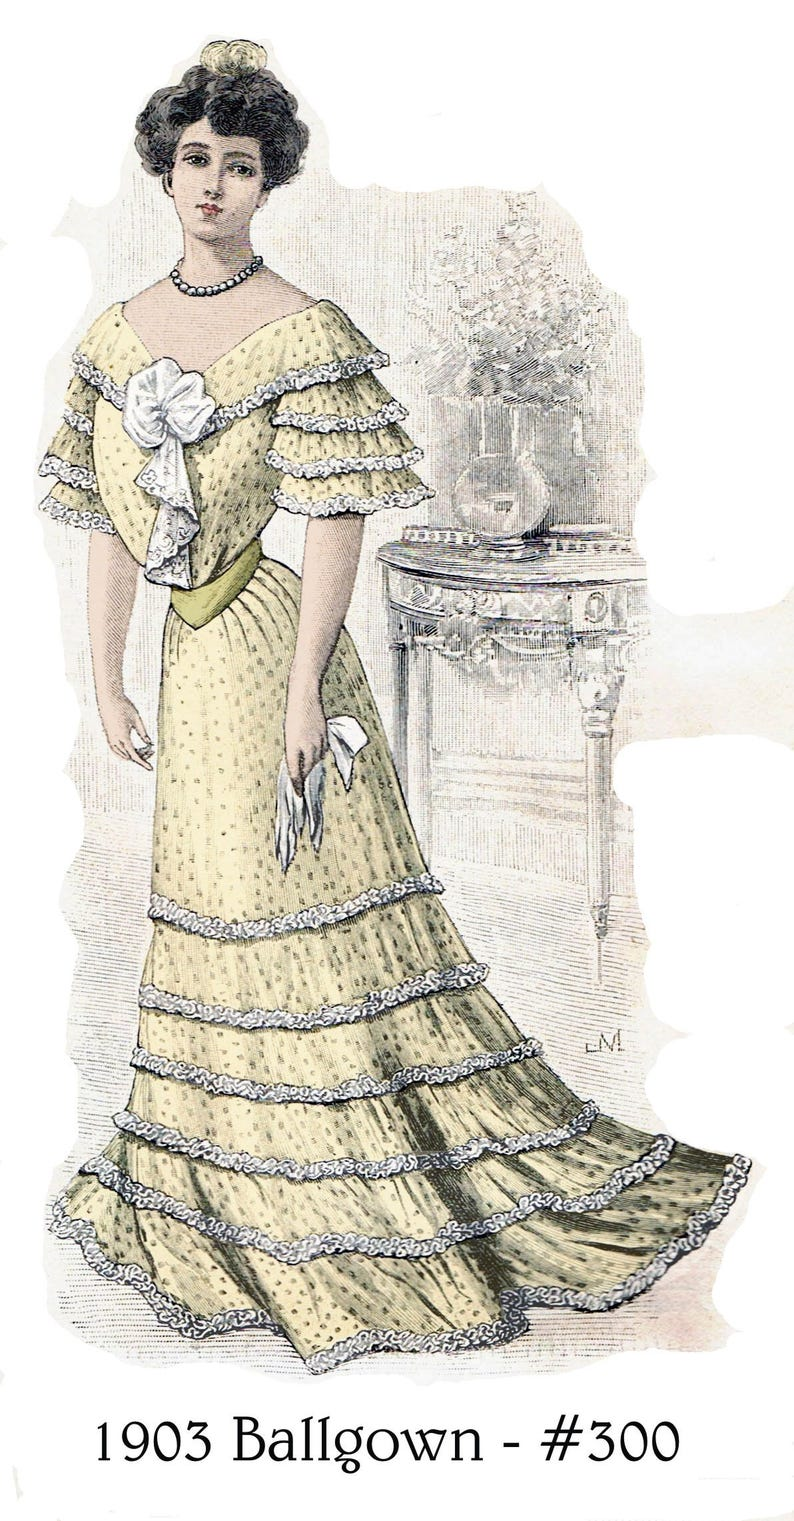 Edwardian Sewing Patterns- Dresses, Skirts, Blouses, Costumes 1903 Edwardian Ballgown pattern - sized for you from antique original - with bonus patterns for lingerie accessories & library - #300 $9.95 AT vintagedancer.com